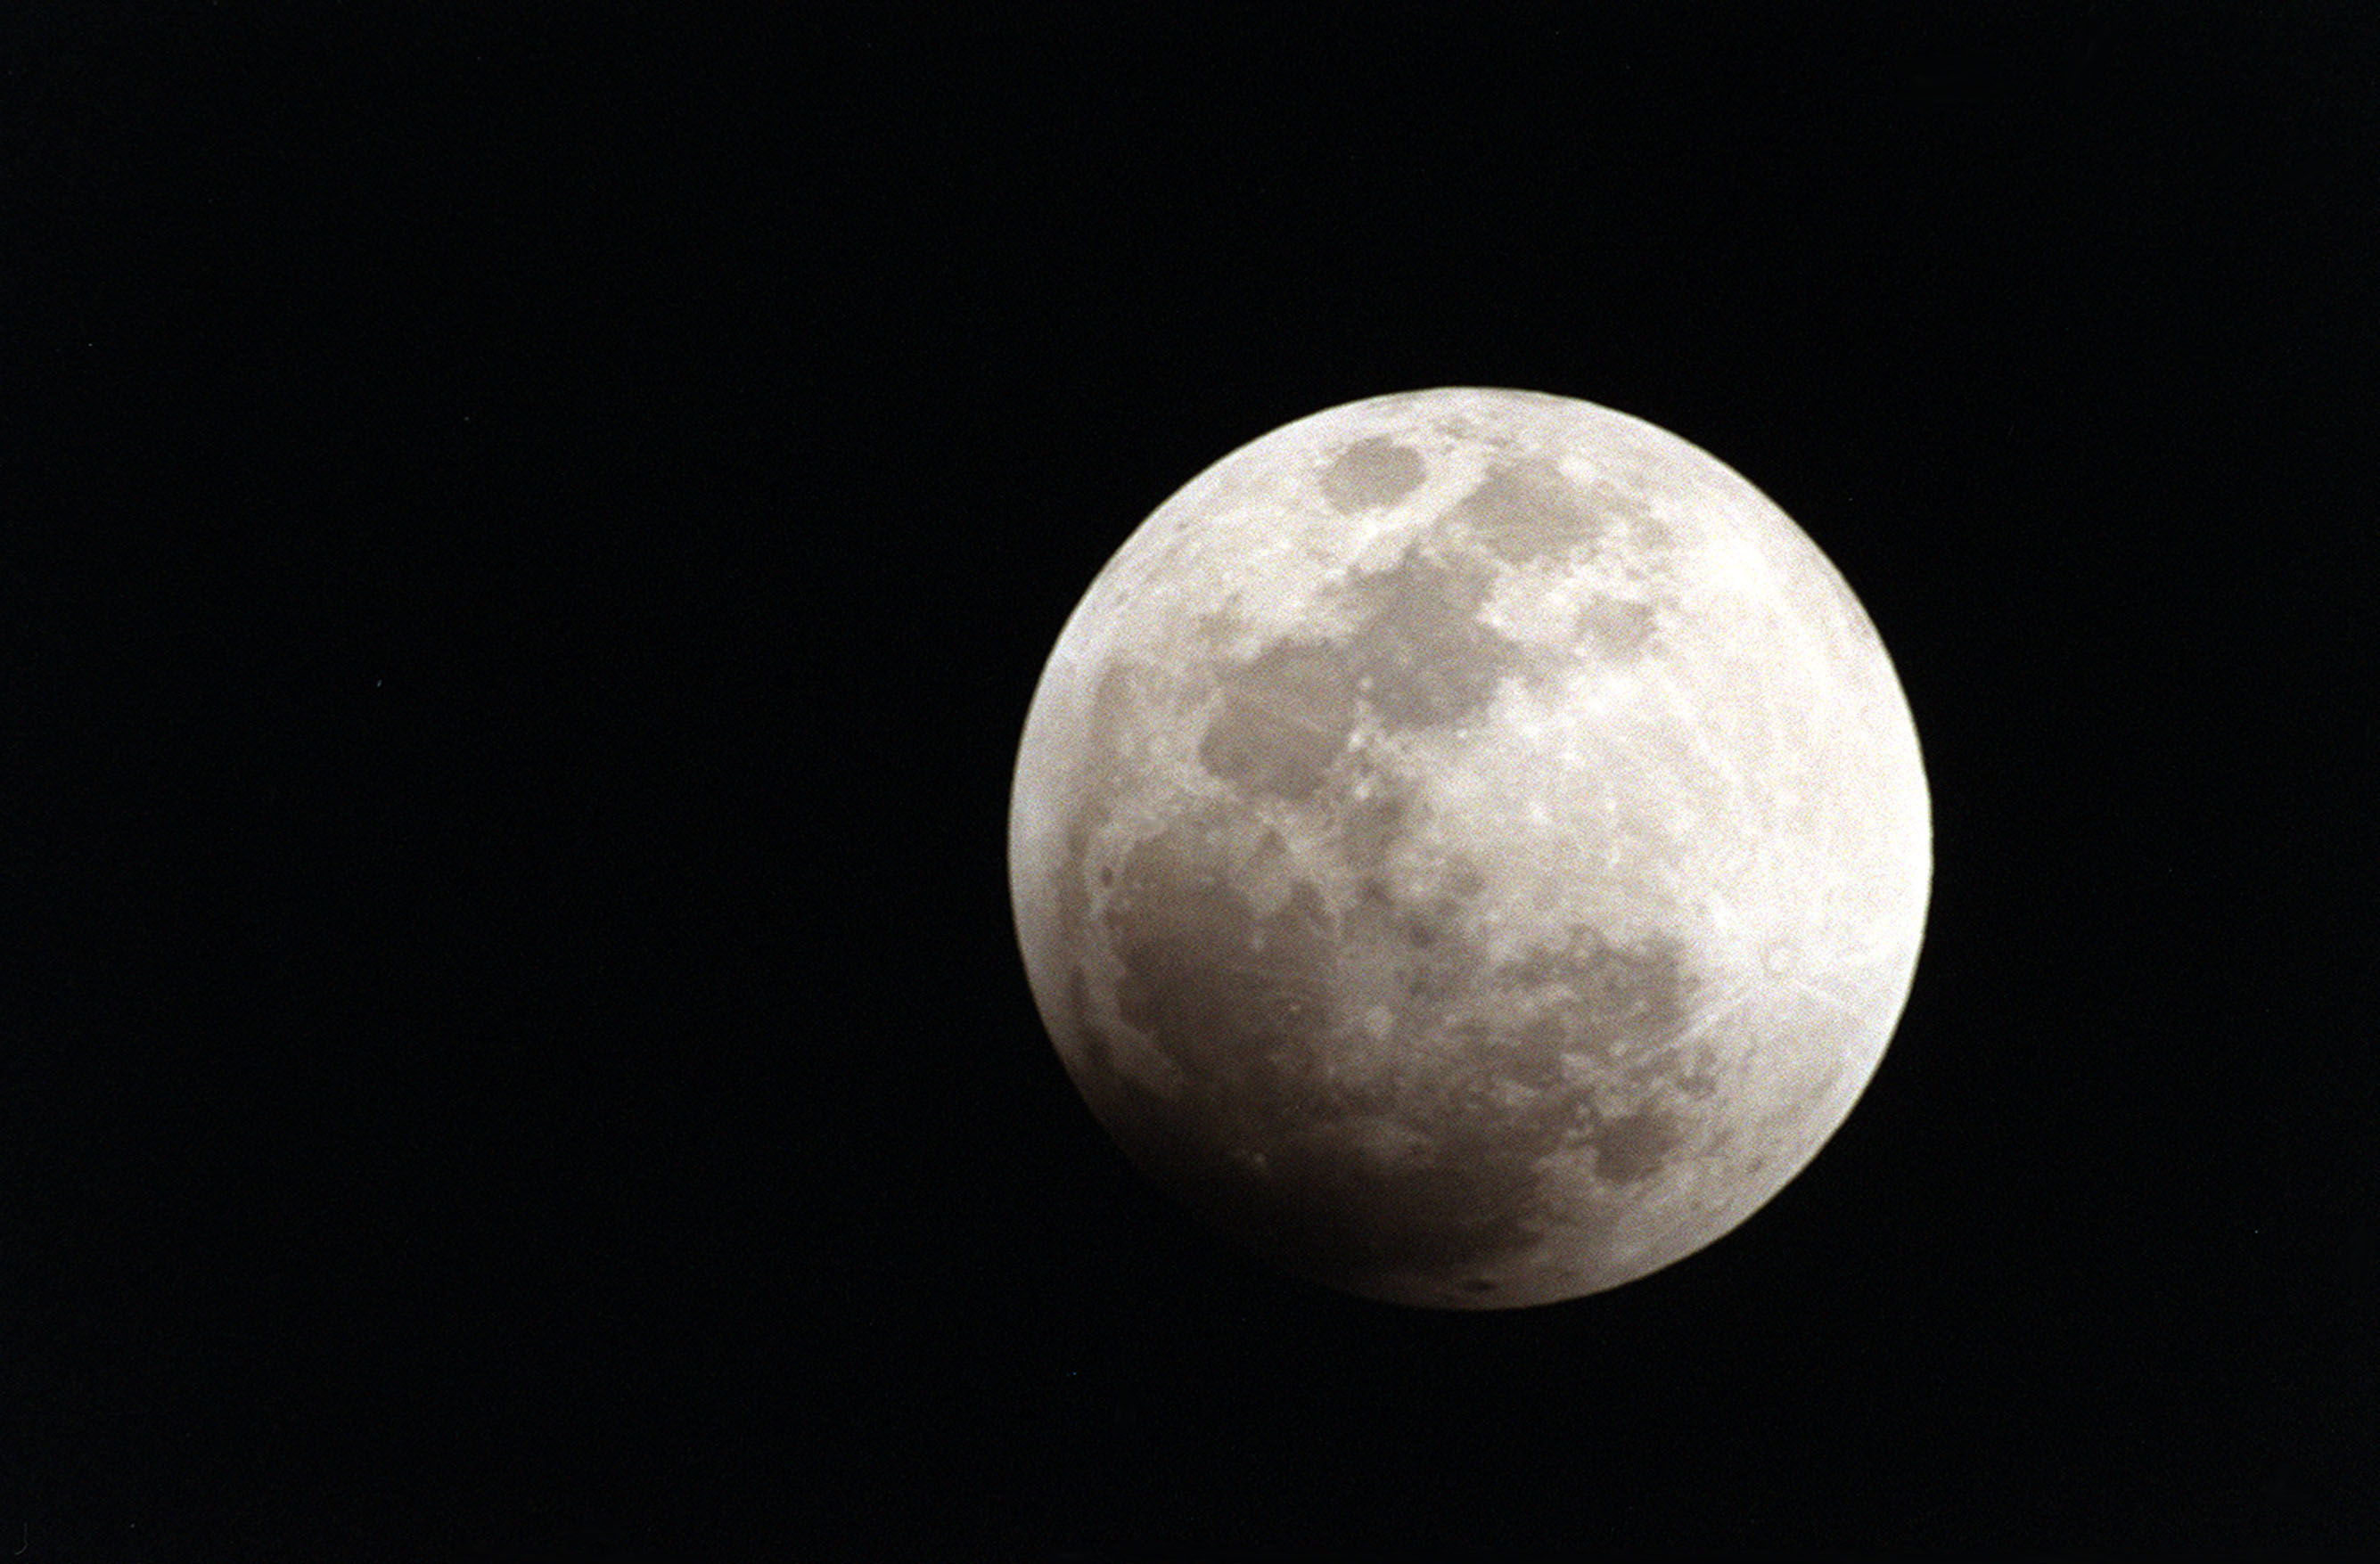 ... moon, are making researchers think again about the moon's geology